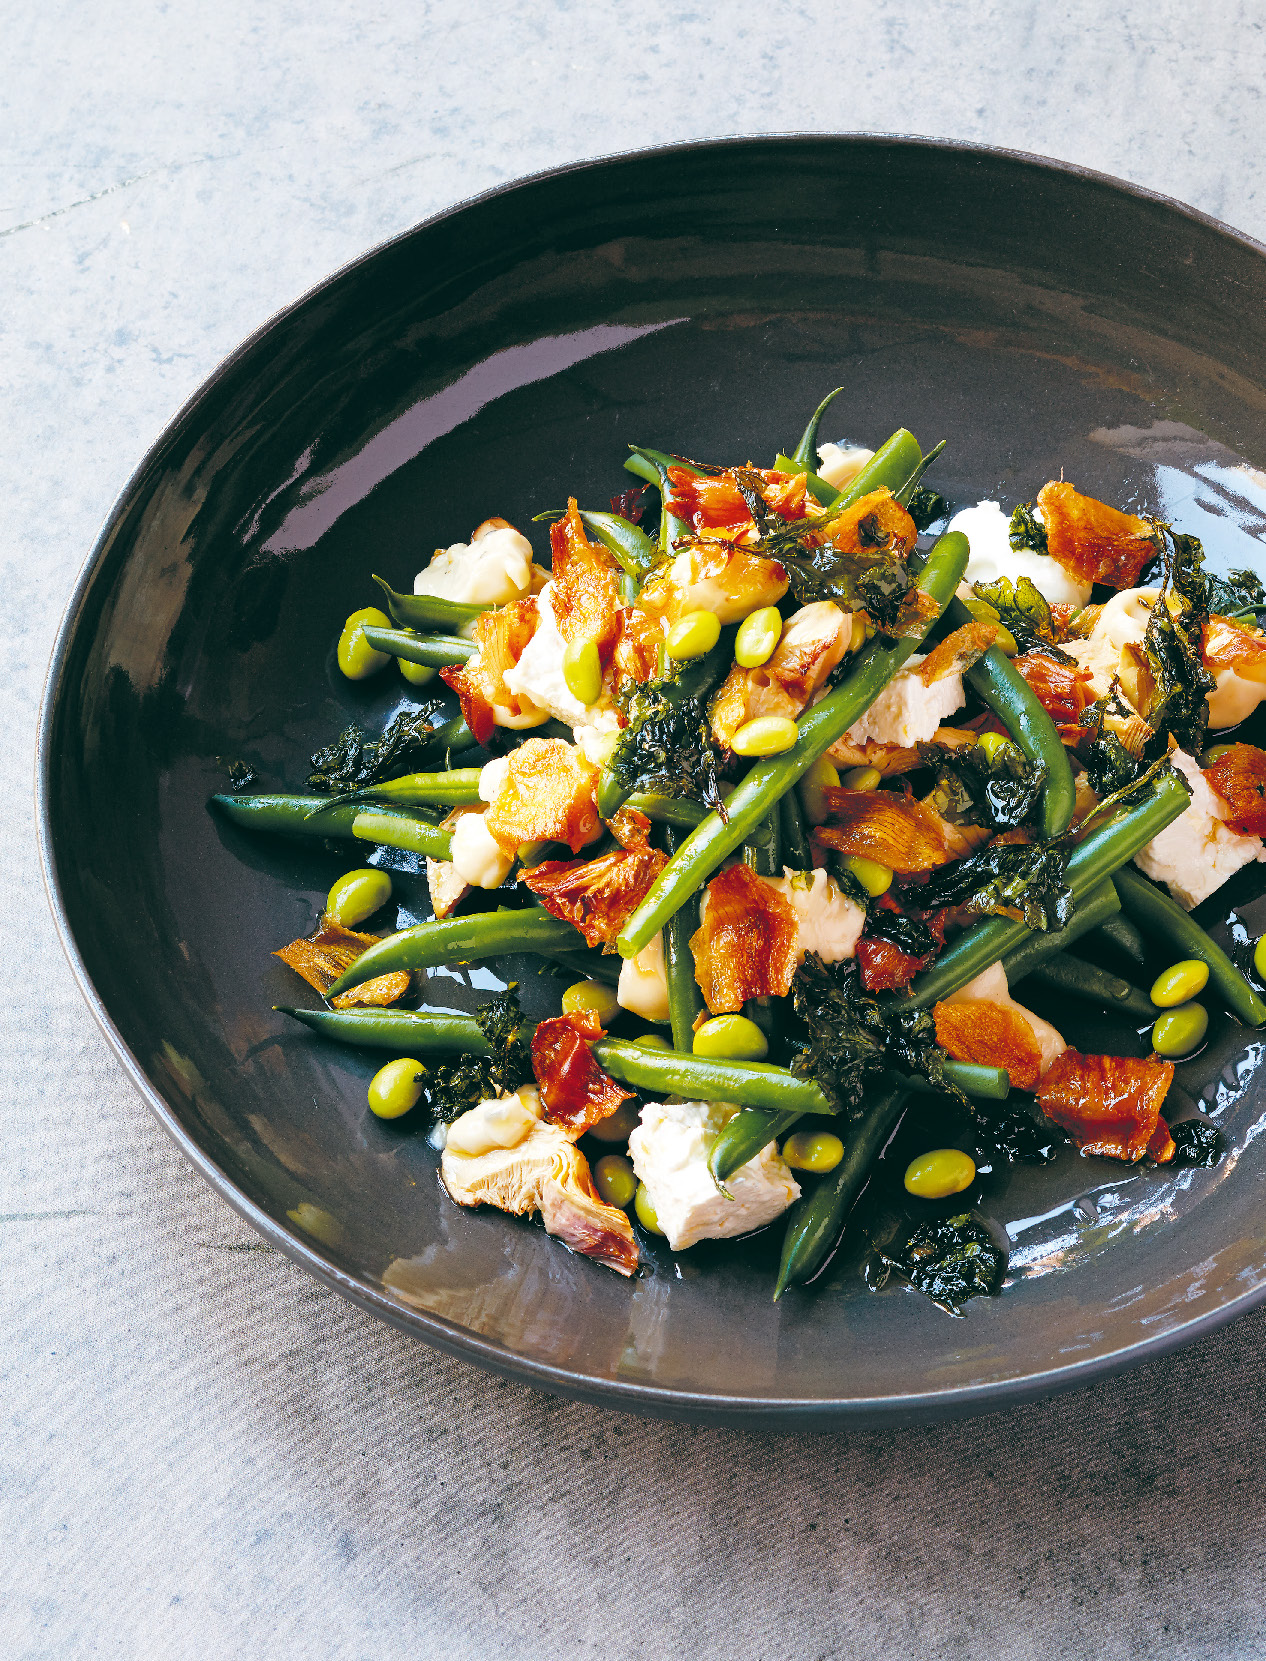 Artichoke and green bean salad